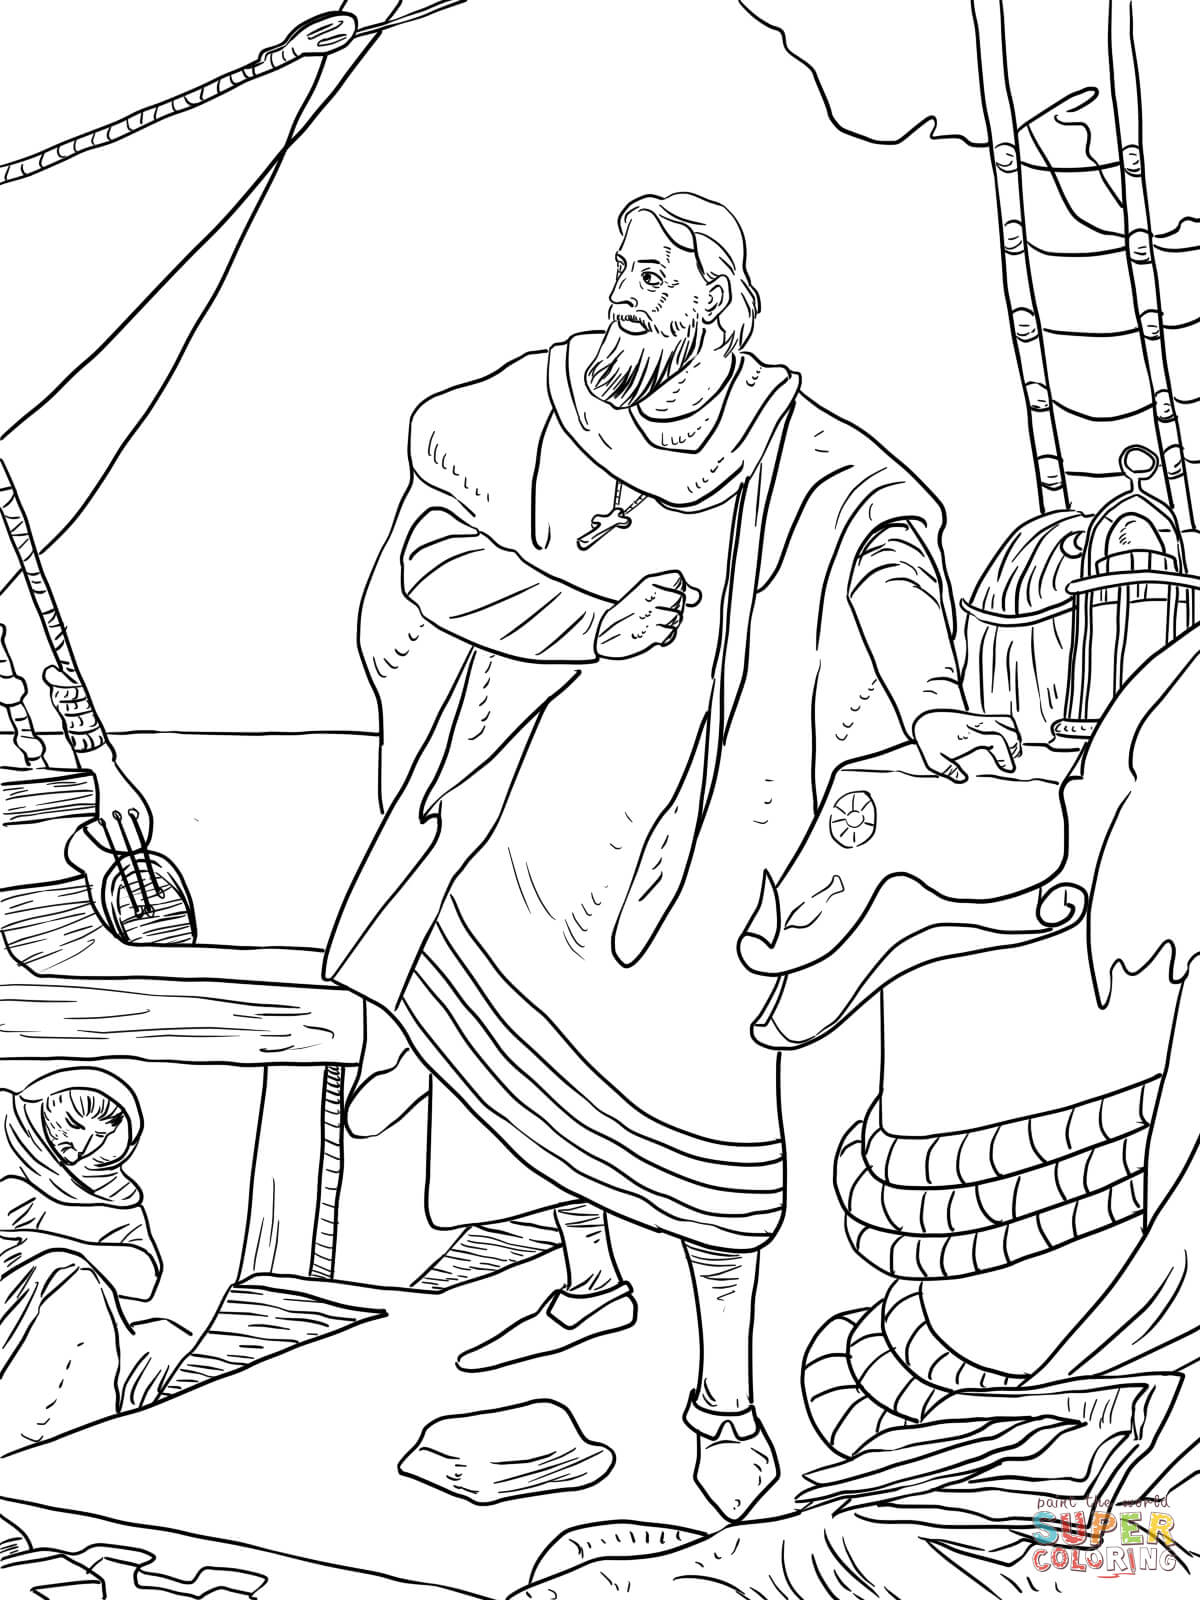 Nina Pinta Santa Maria Coloring Sheet With Christopher Columbus Pages On The